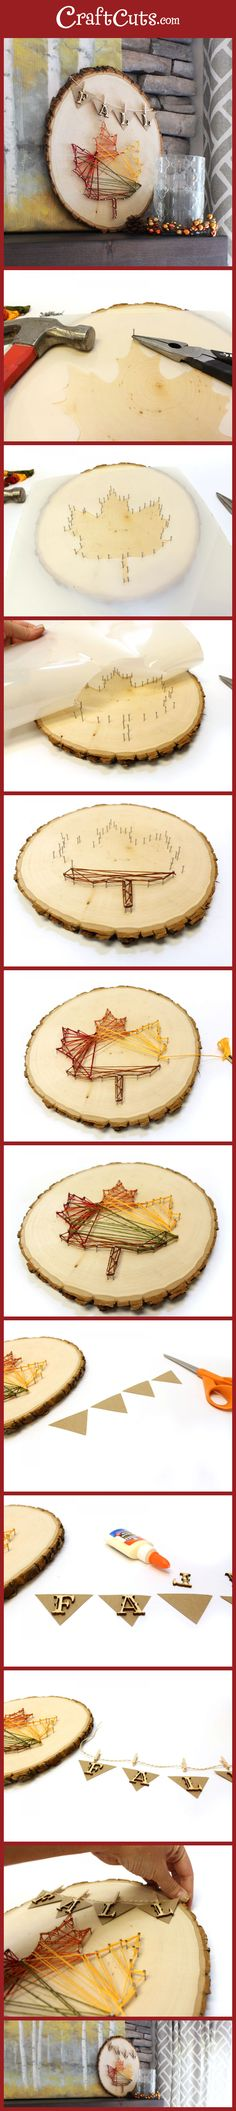 Fall String Art | Leaf String Art | Wood Slice DIY | CraftCuts.com